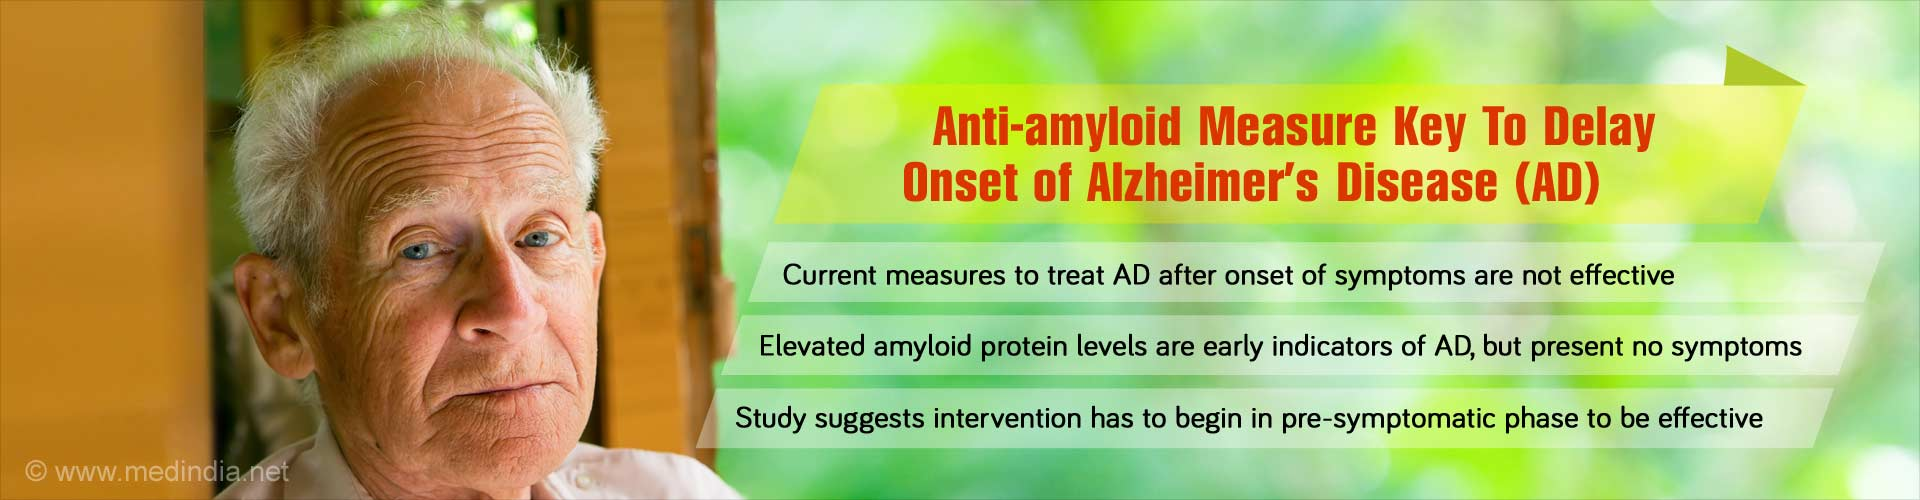 Anti-amlyloid measures key to delaying onset of Alzheimer's Disease (AD) - Current measures to treat AD after onset of symptoms are not effective - Elevated amlyloid protein levels are early indicators of AD, but present no symptoms - Study suggests intervention has to begin in pre-symptomatic phase to be effective